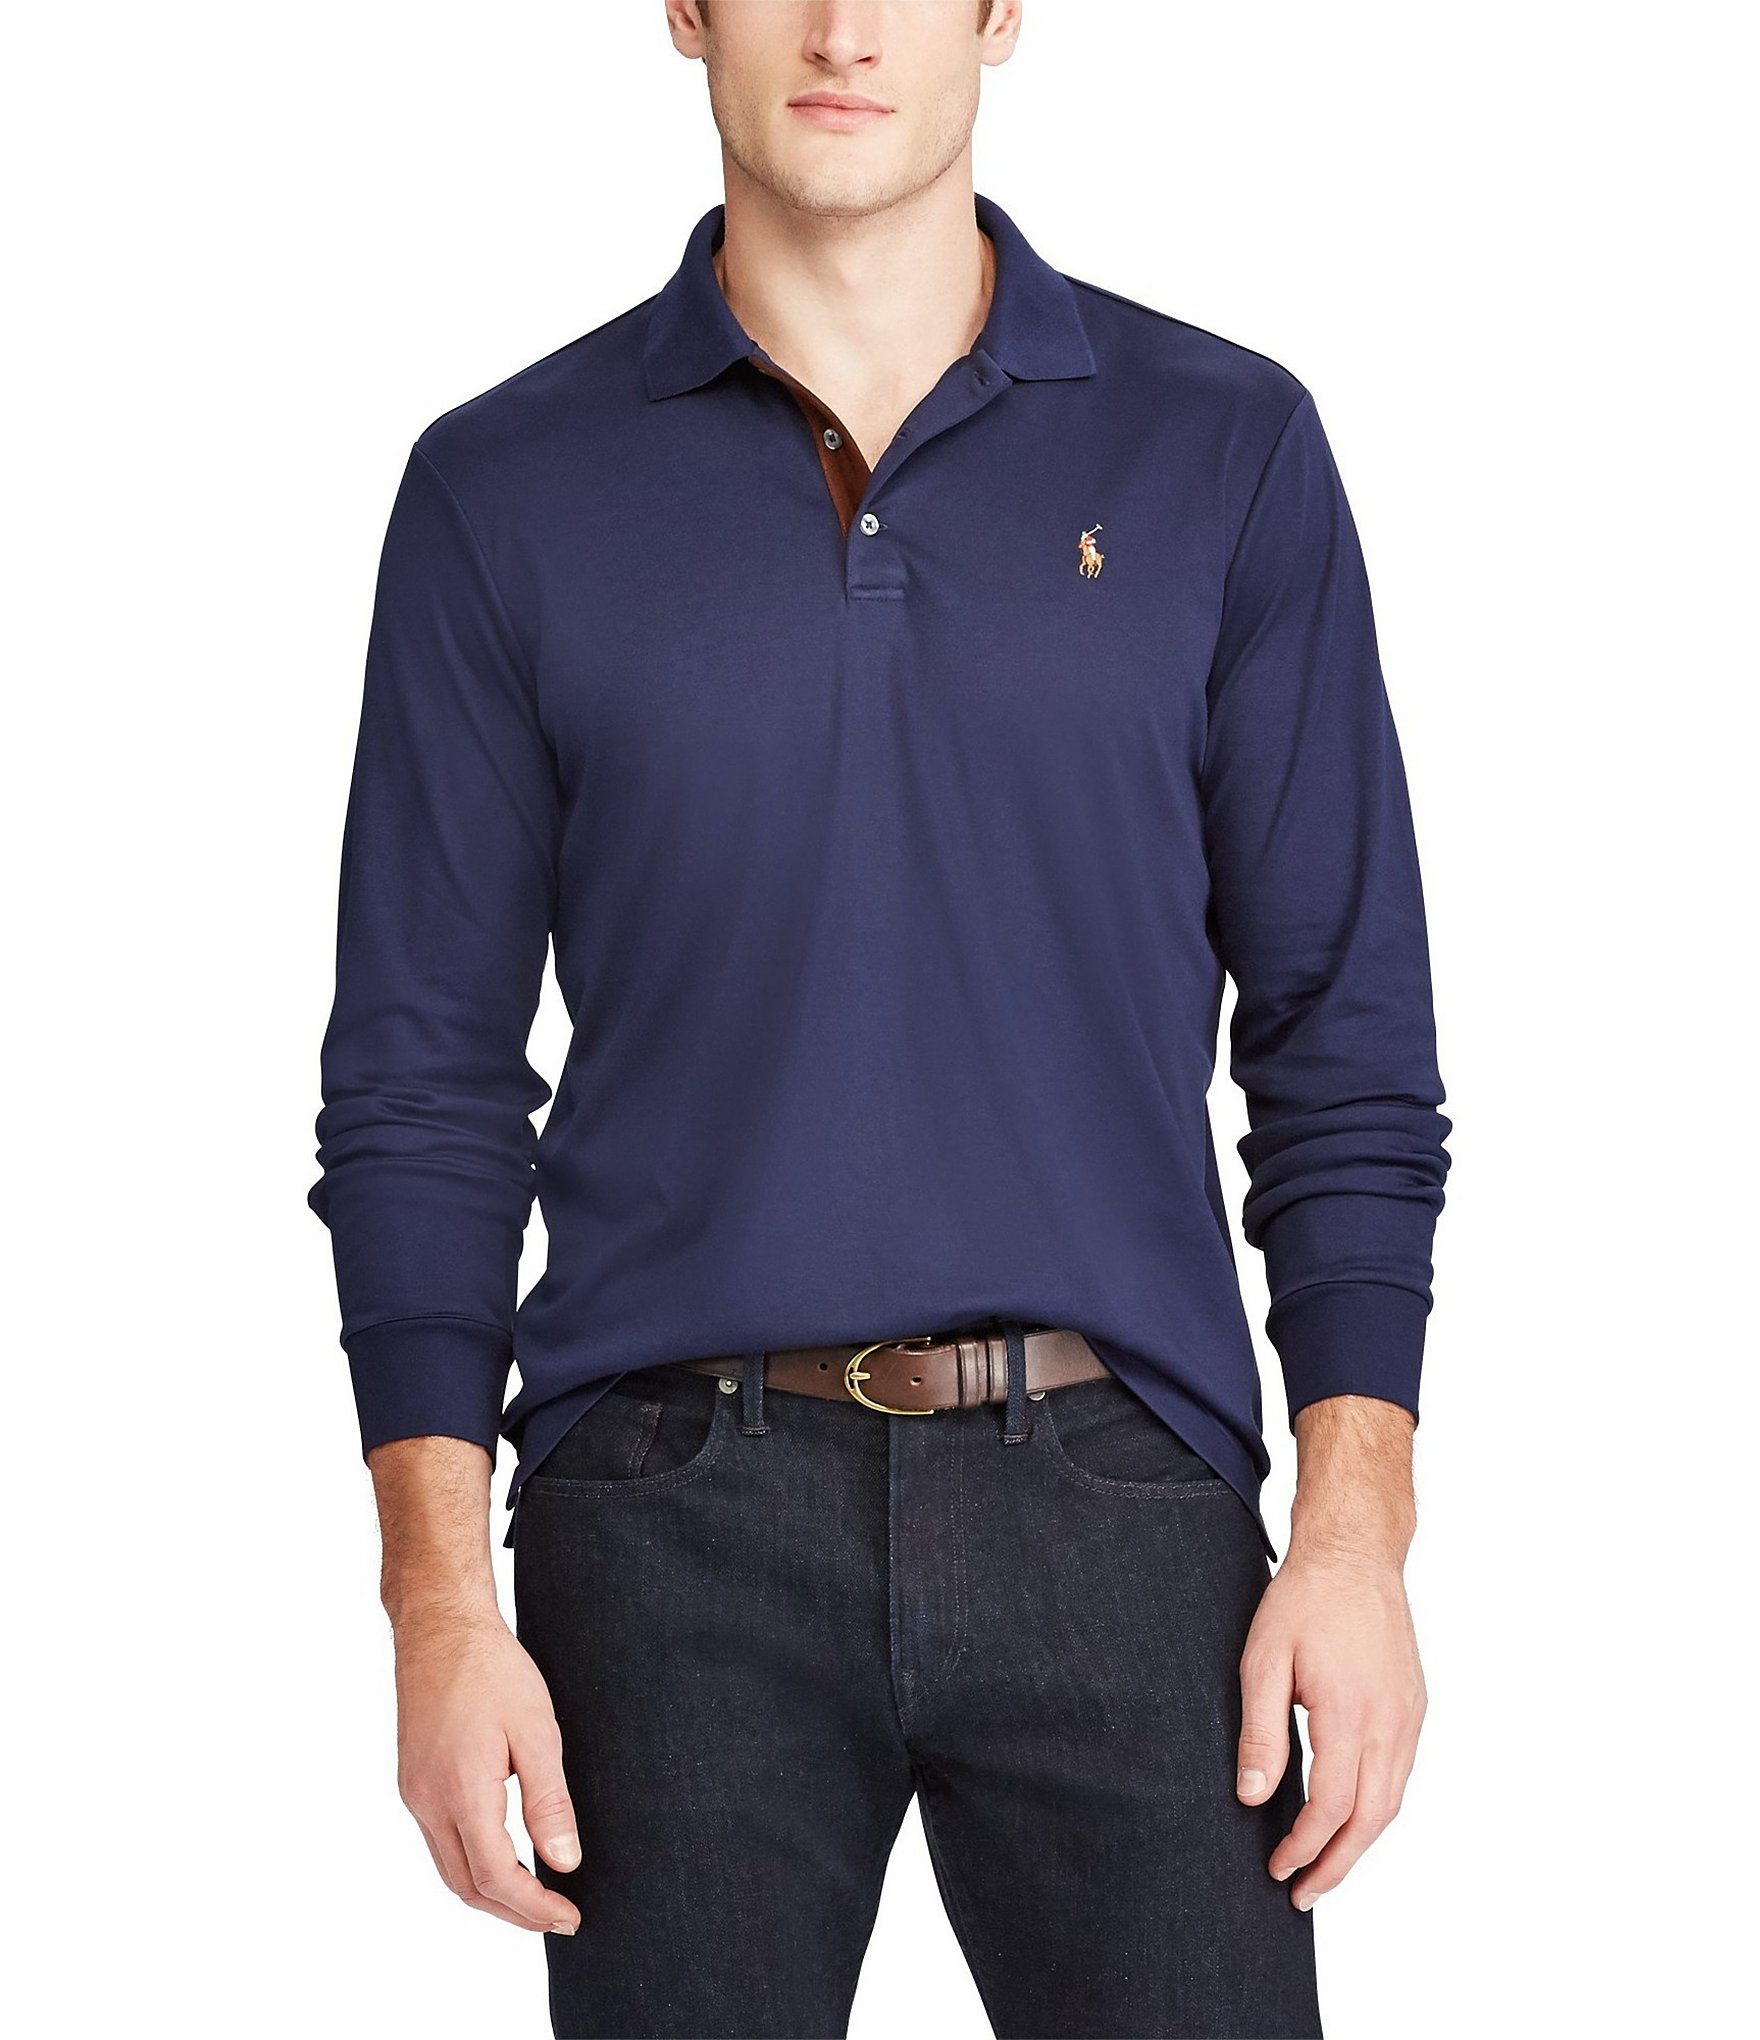 Polo ralph lauren classic fit soft touch long sleeve polo for Long sleeve fitted polo shirts